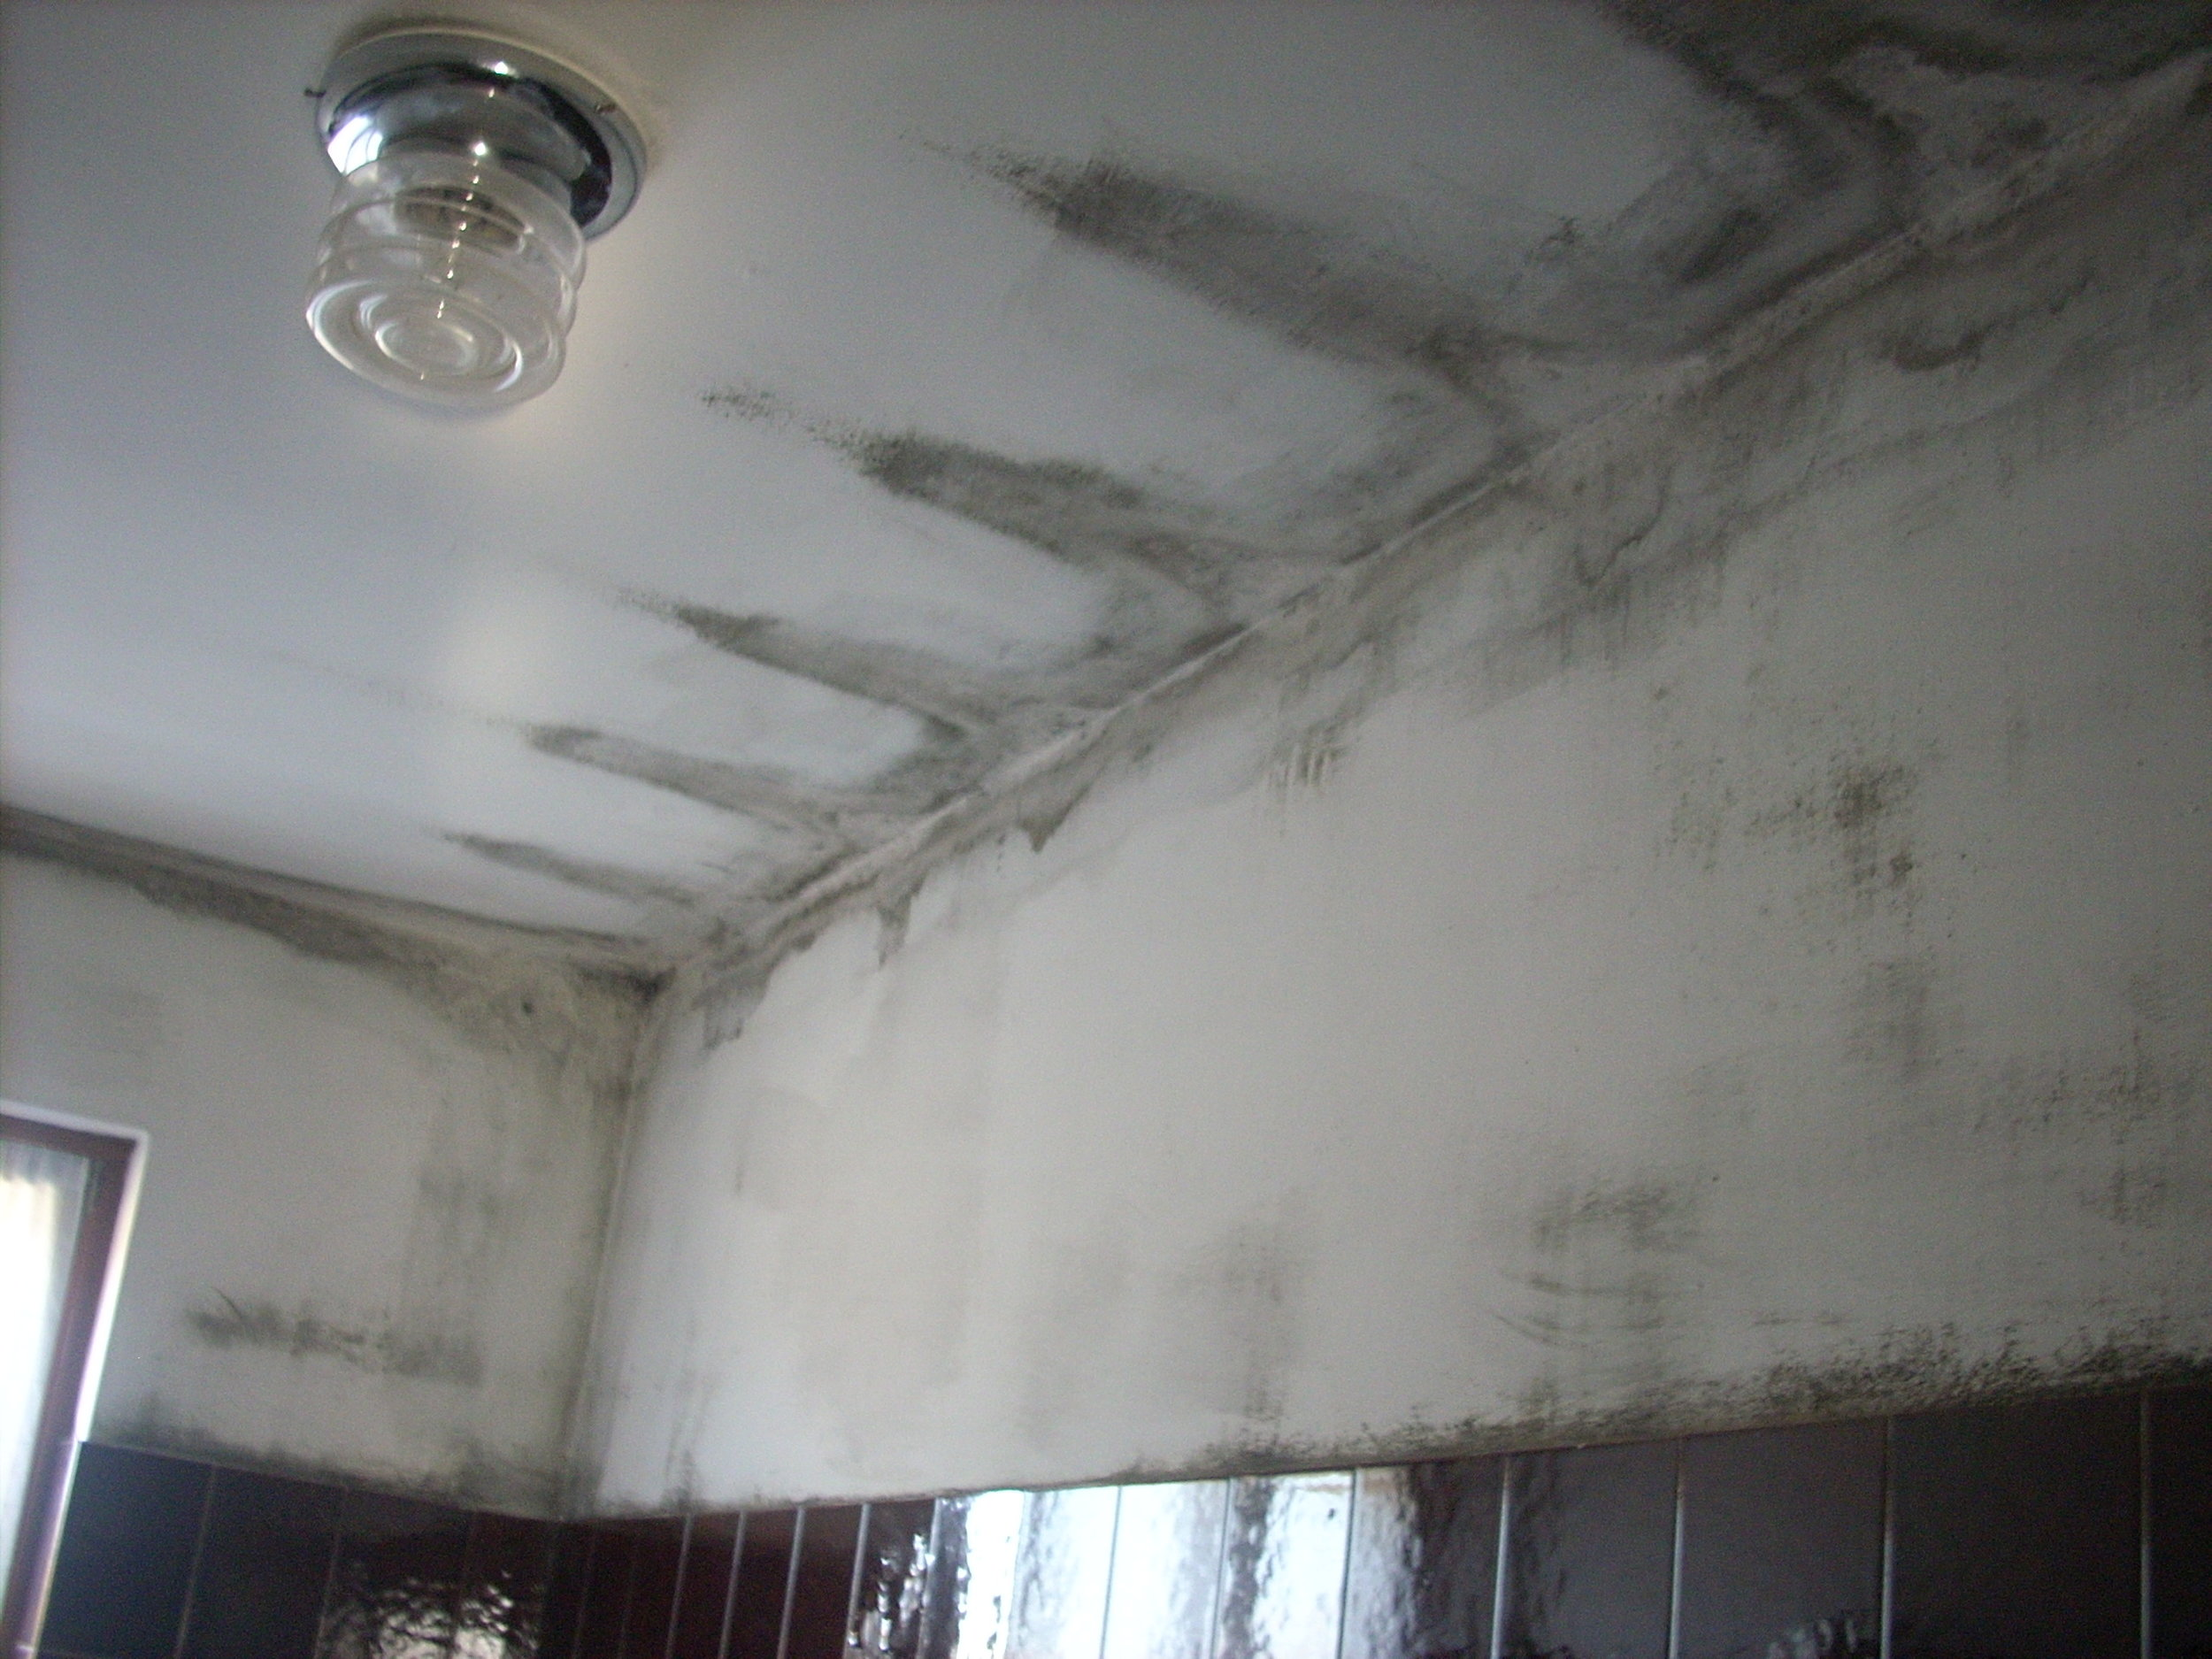 Mold caused by a thermal bridge and lack of ventilation - photo by Damiano Chiarini